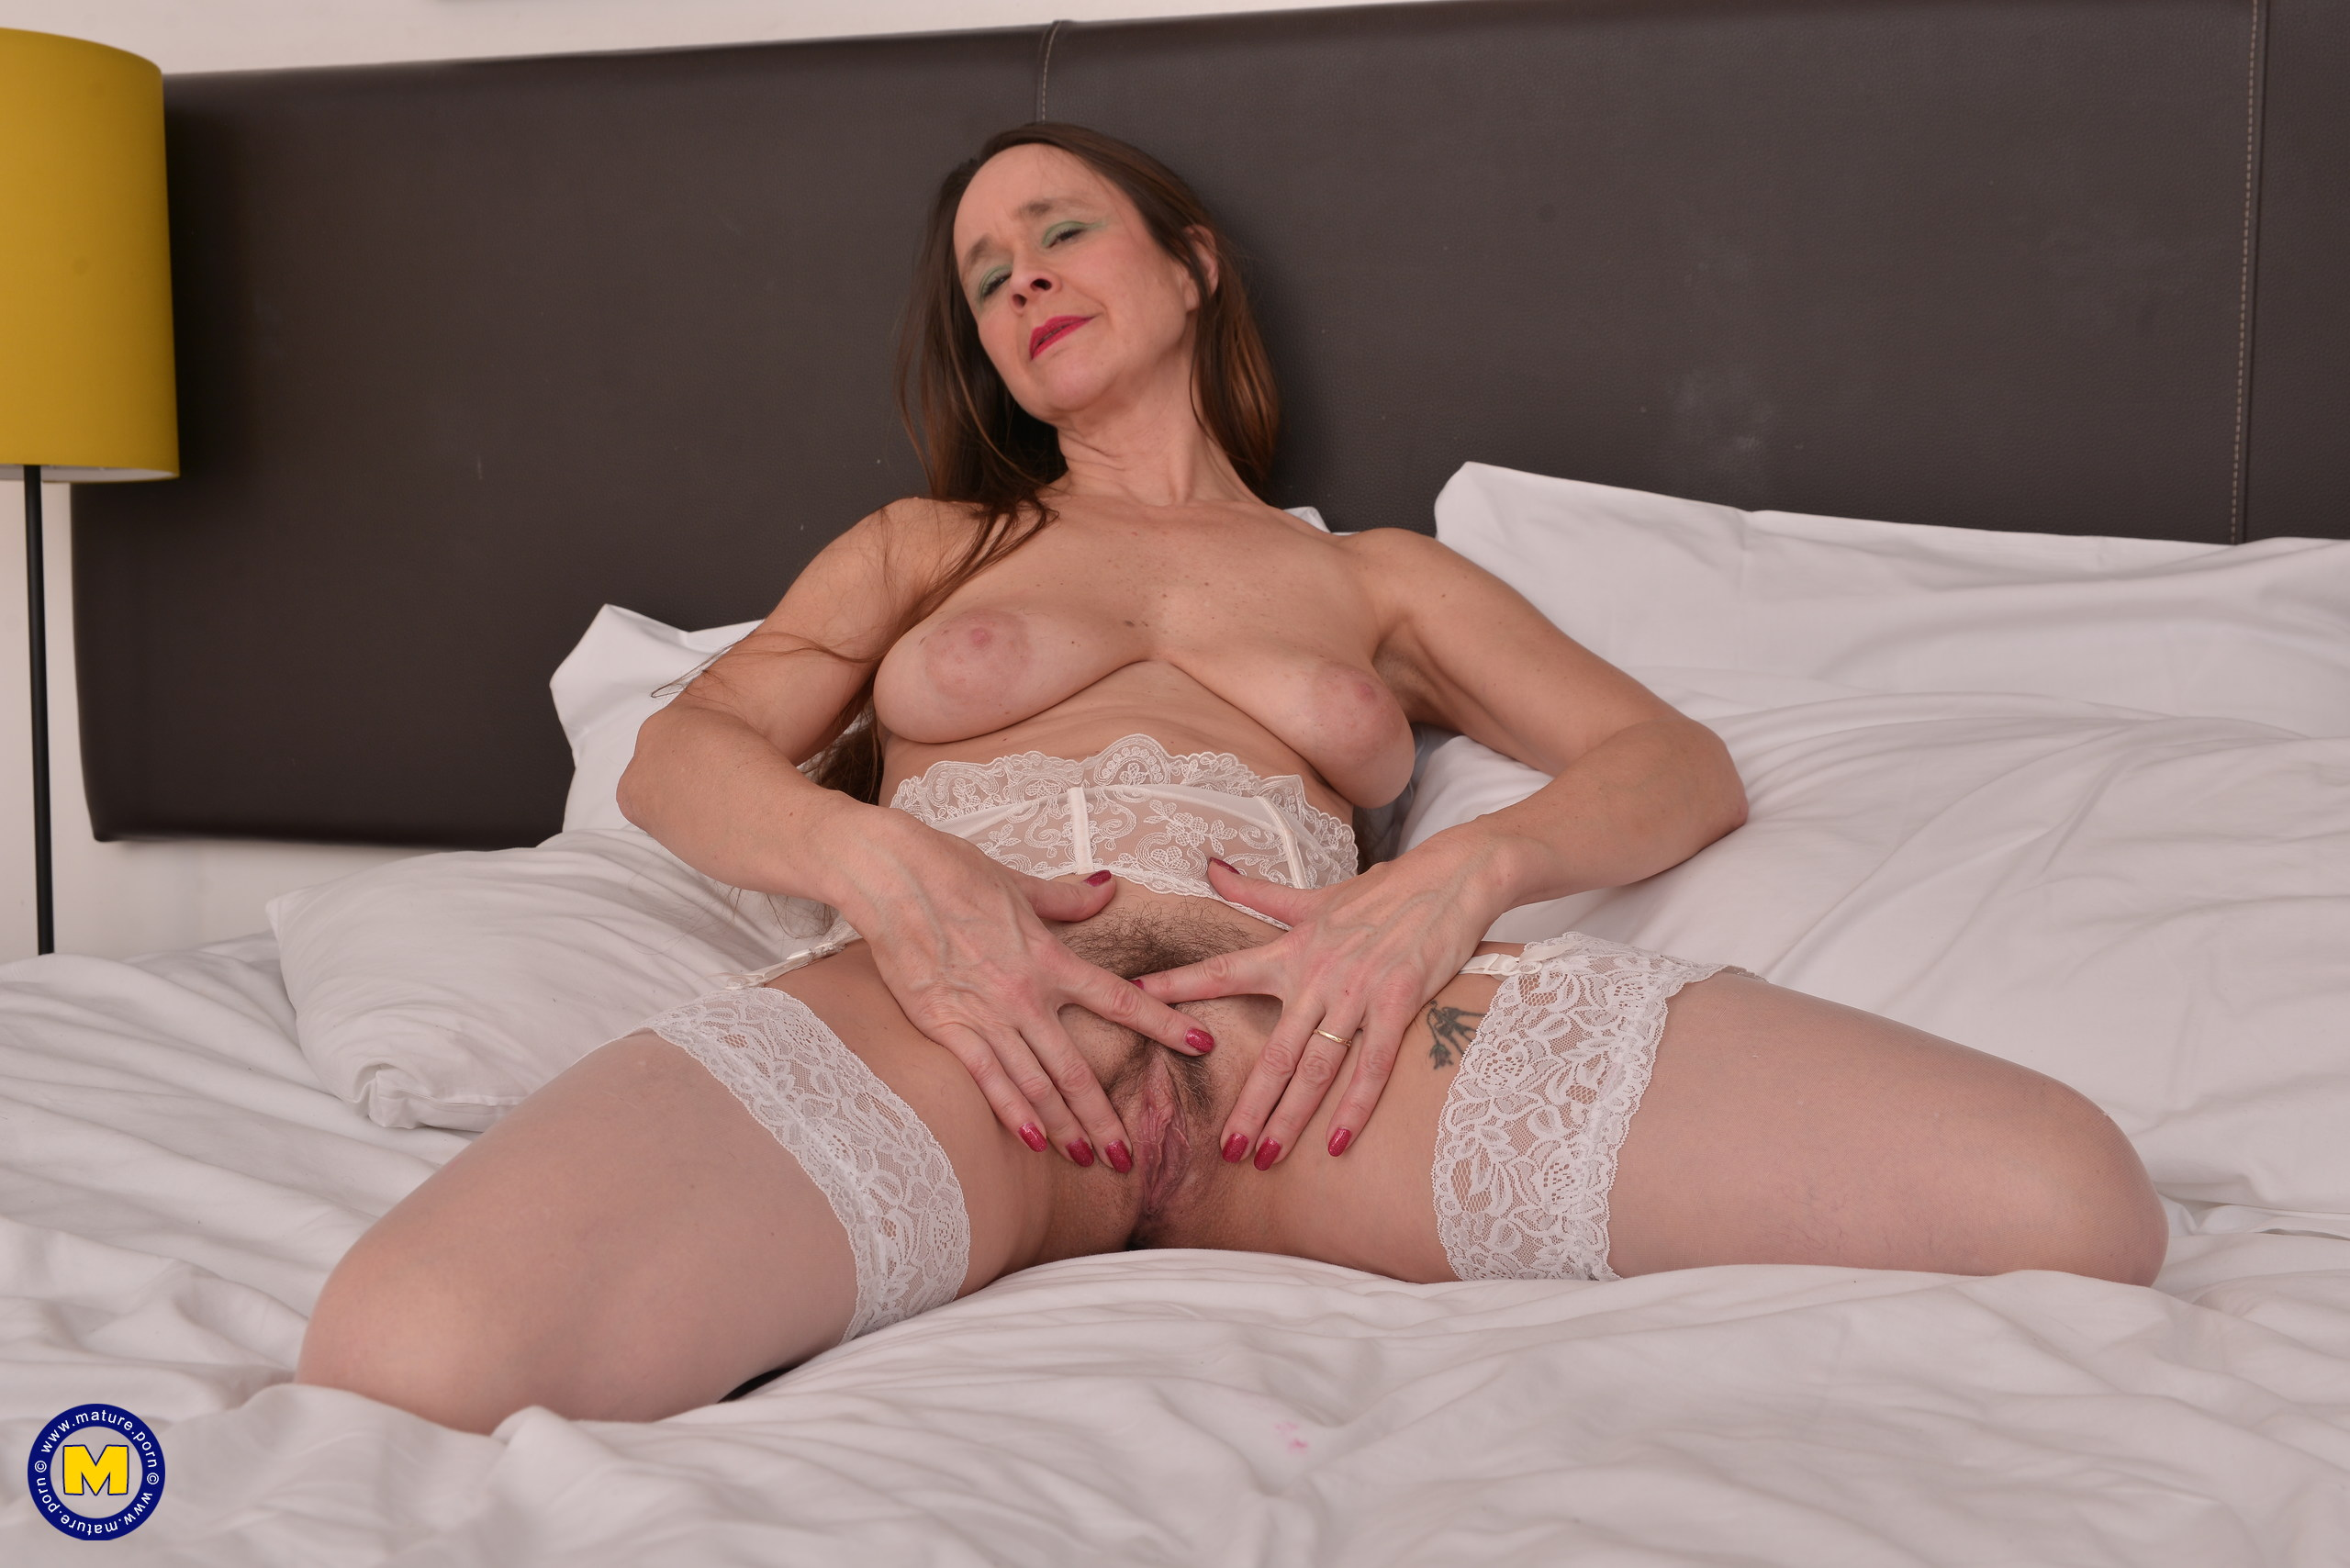 Furry Brit housewife getting super-naughty